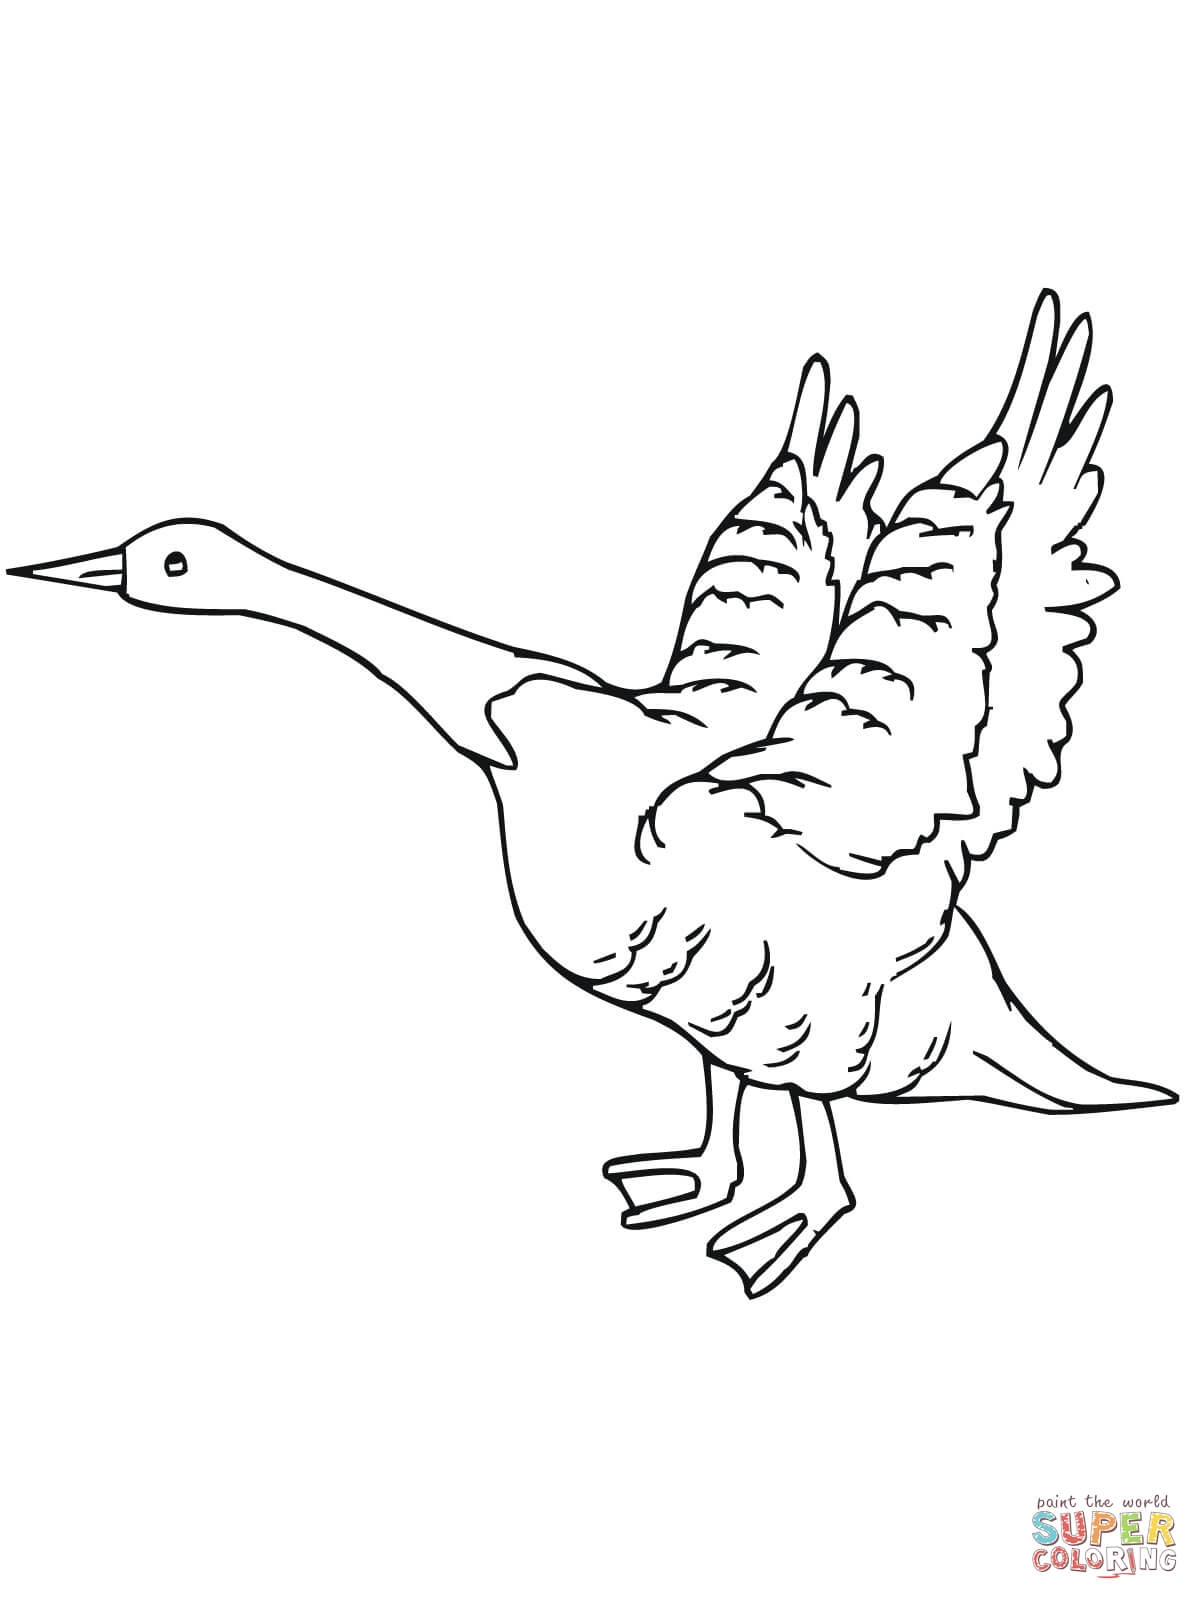 Goose Coloring Page - Goose Fly Away Coloring Line